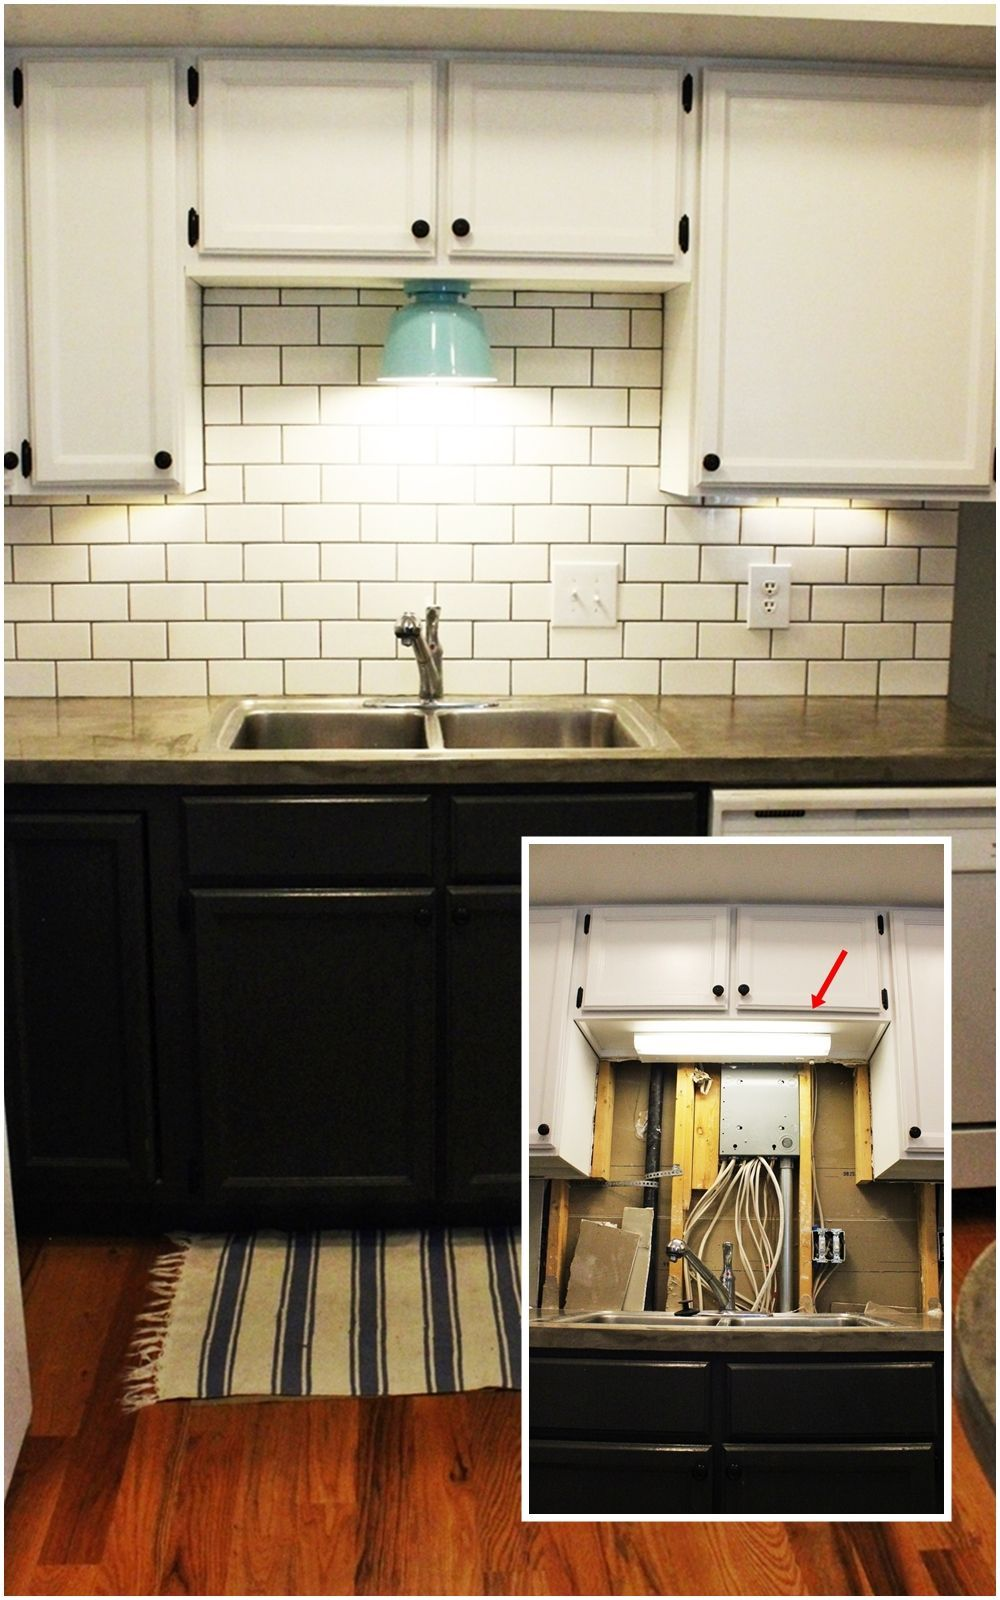 Wall Light Over Kitchen Sink : DIY Kitchen Lighting Upgrade: LED Under-Cabinet Lights & Above-the-Sink Light